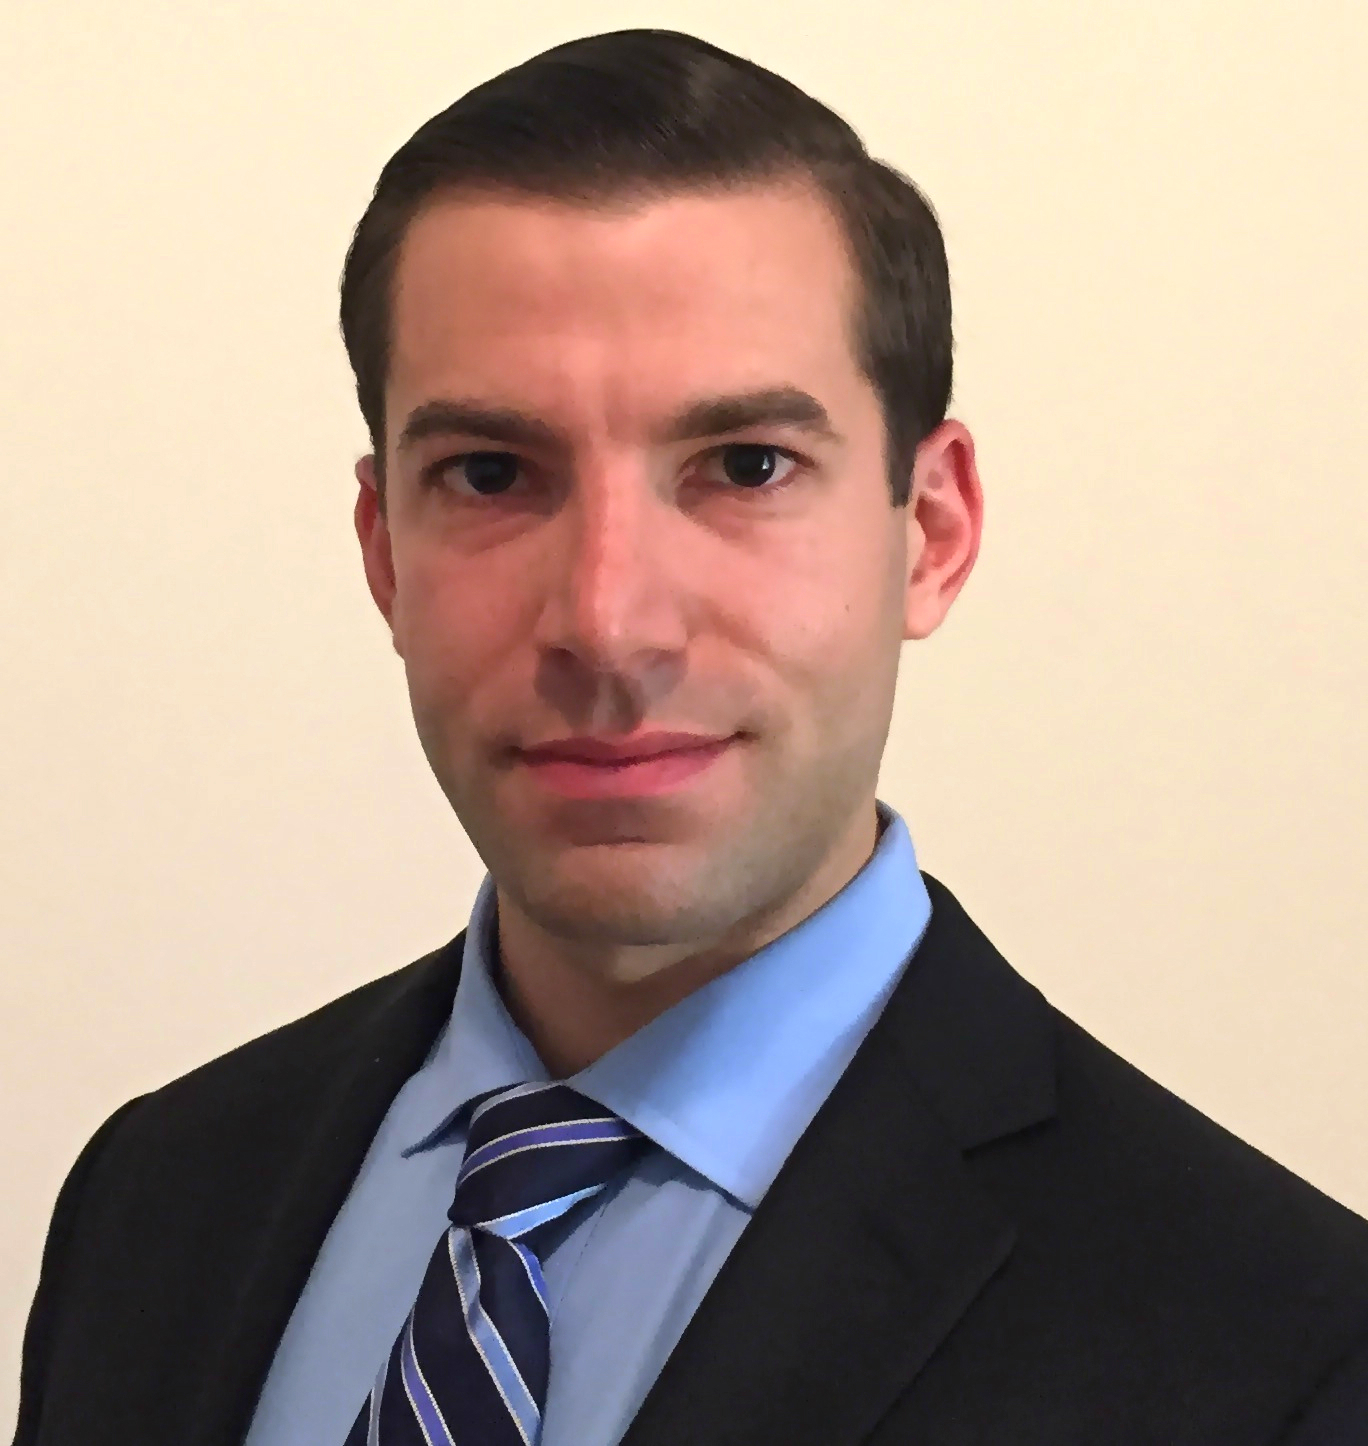 Bob Valentine Is A 2017 MBA Candidate, And A Robert S. Kaplan Life Sciences  Fellow At Harvard Business School. Bob Has Spent Over Eight Cumulative  Years In ...